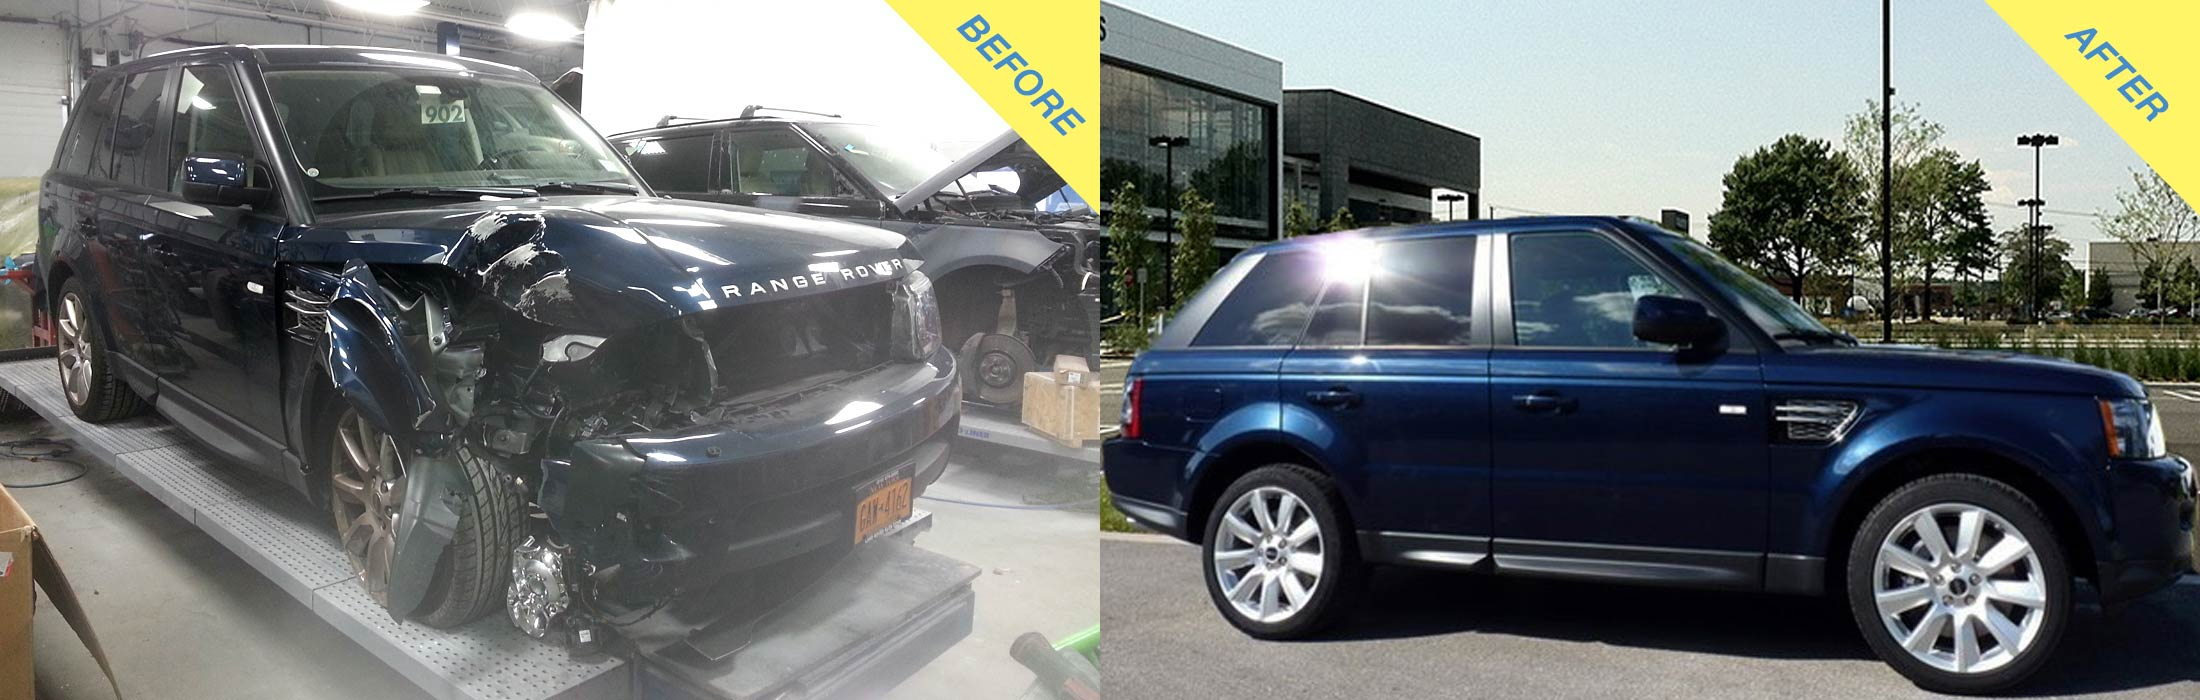 beforeandafter_car_2